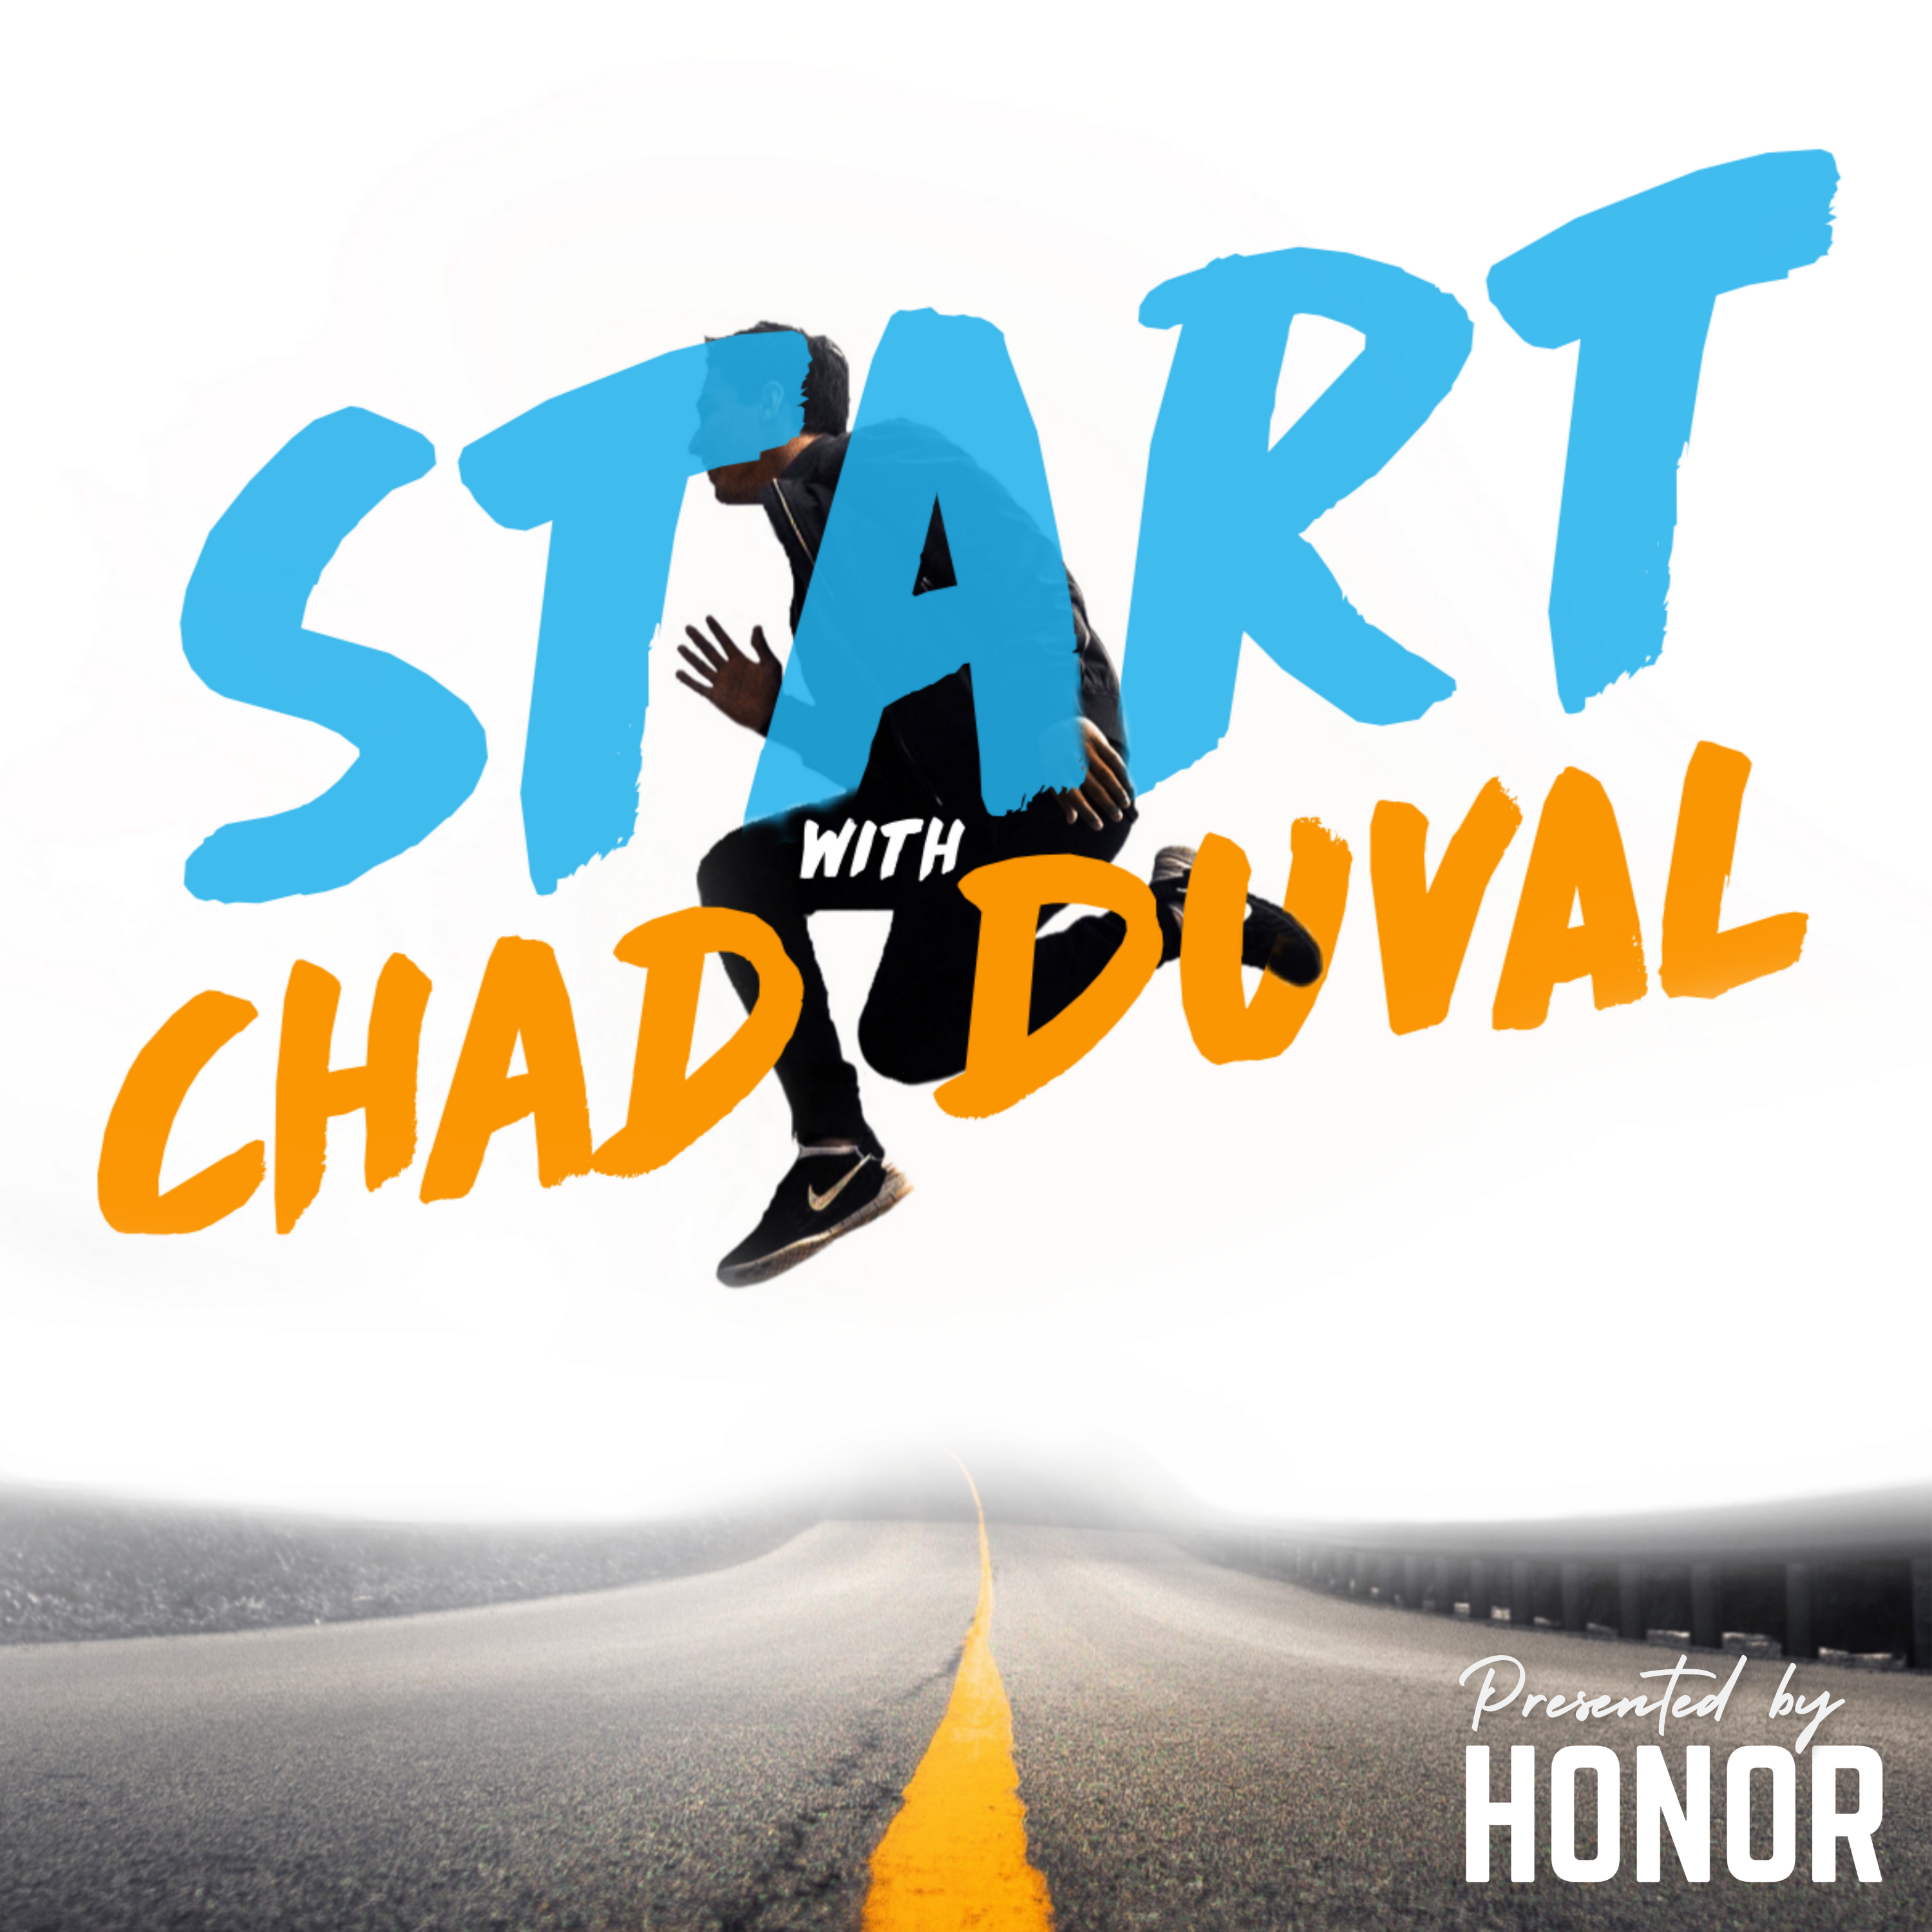 Start with Chad Duval show art